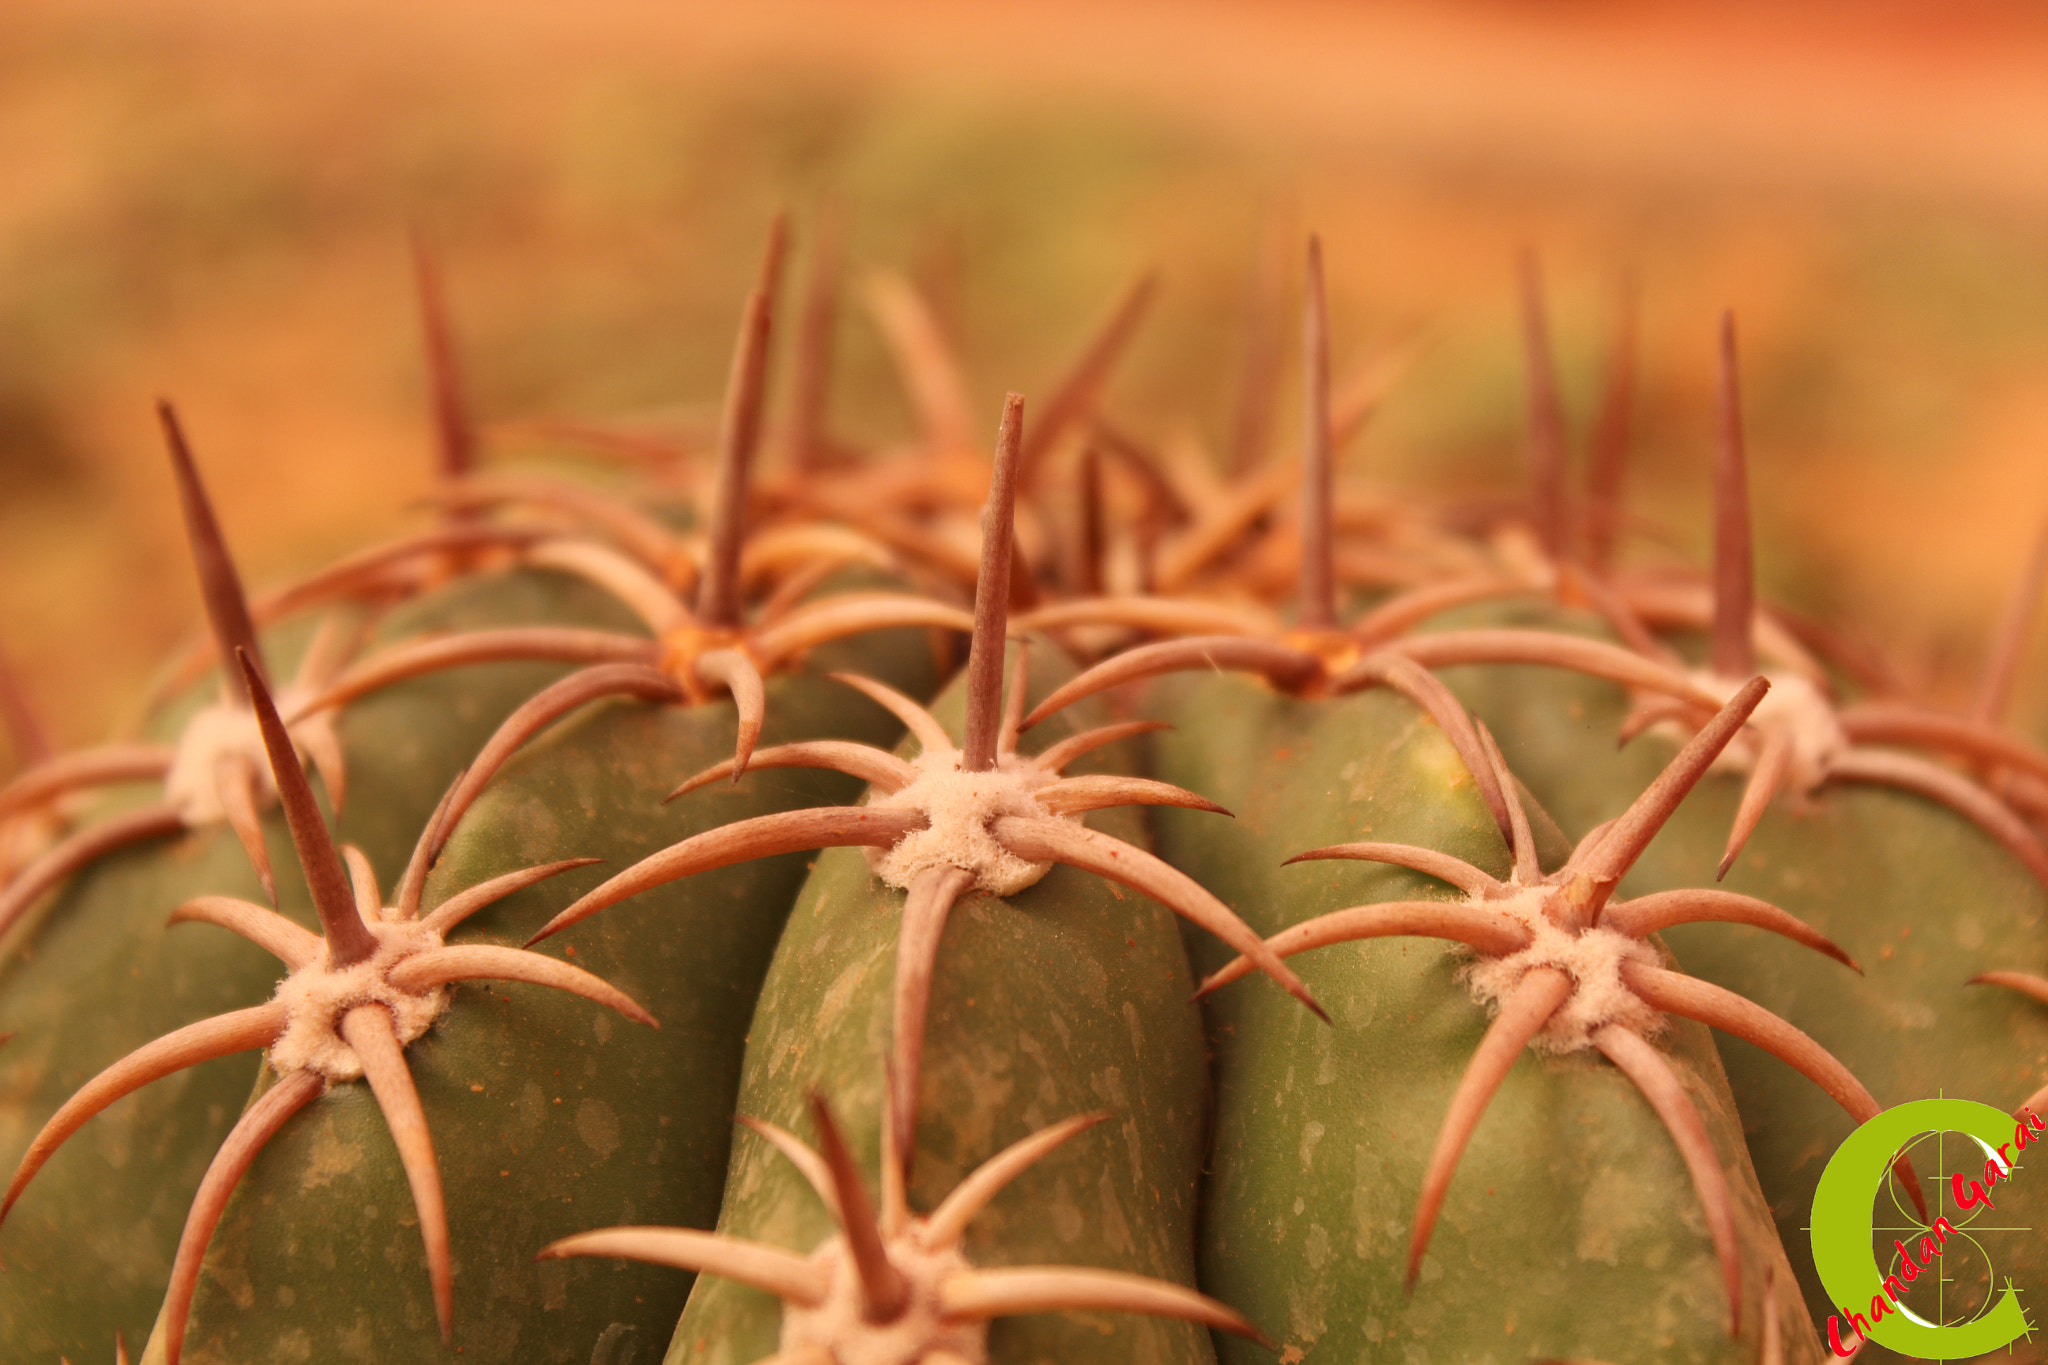 Photograph Strings of Cactus by CHANDAN GARAI on 500px